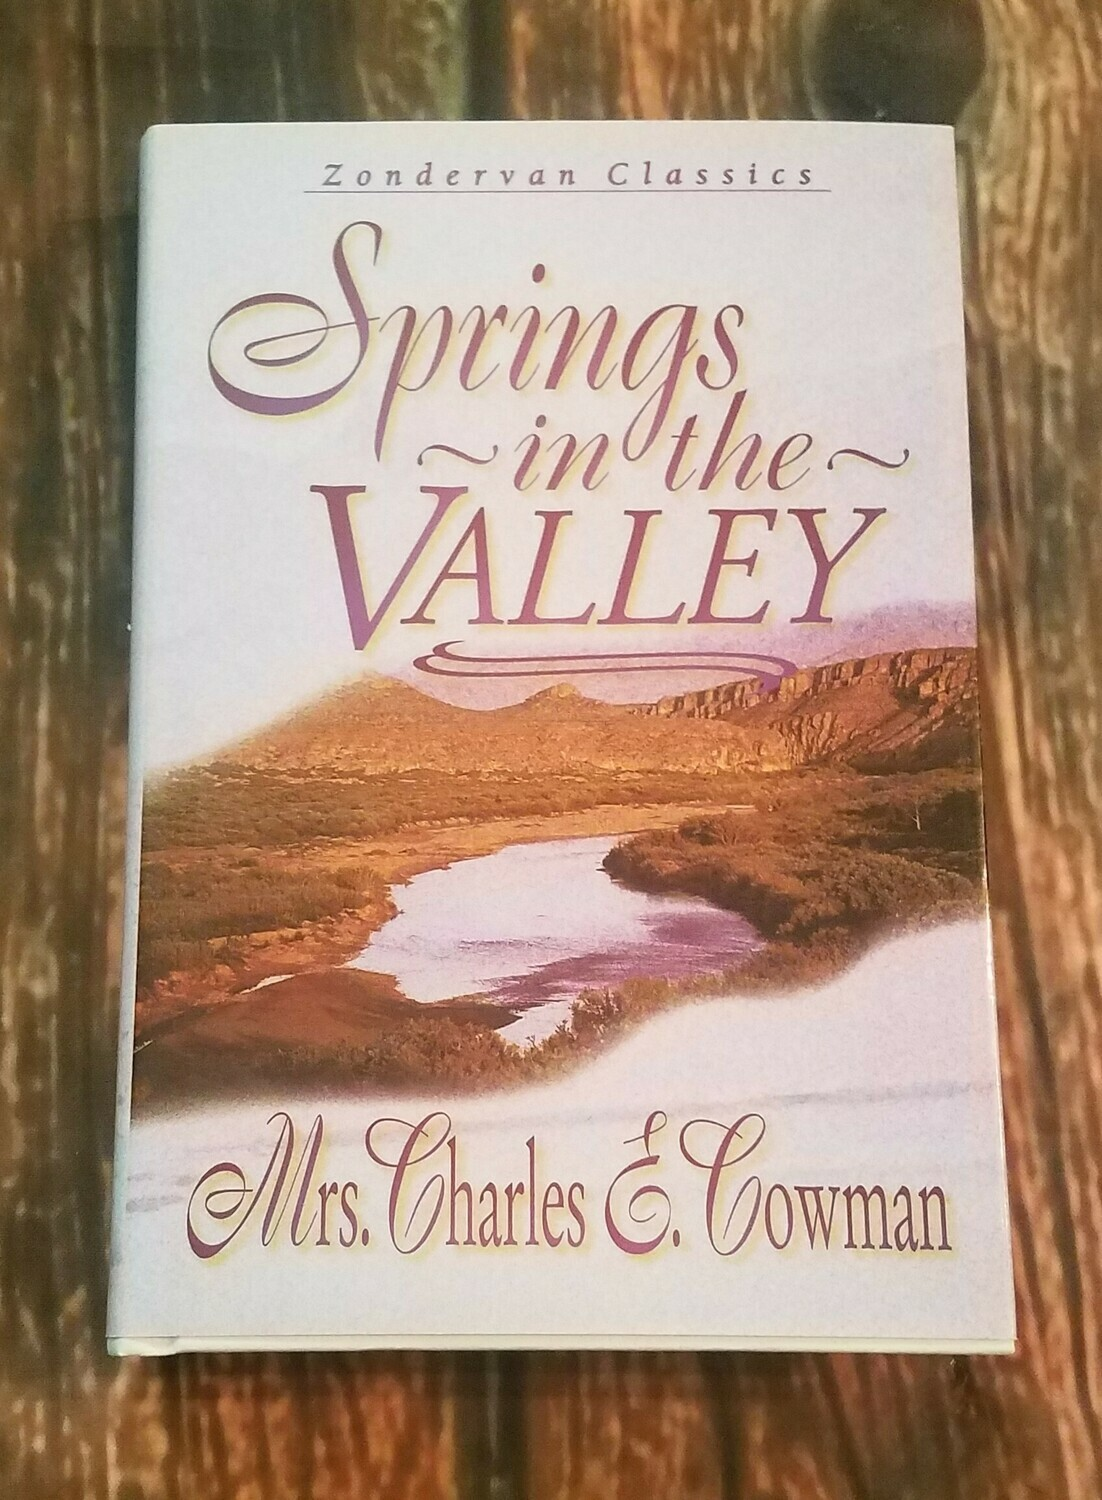 Springs in the Valley by Mrs. Charles E. Cowman